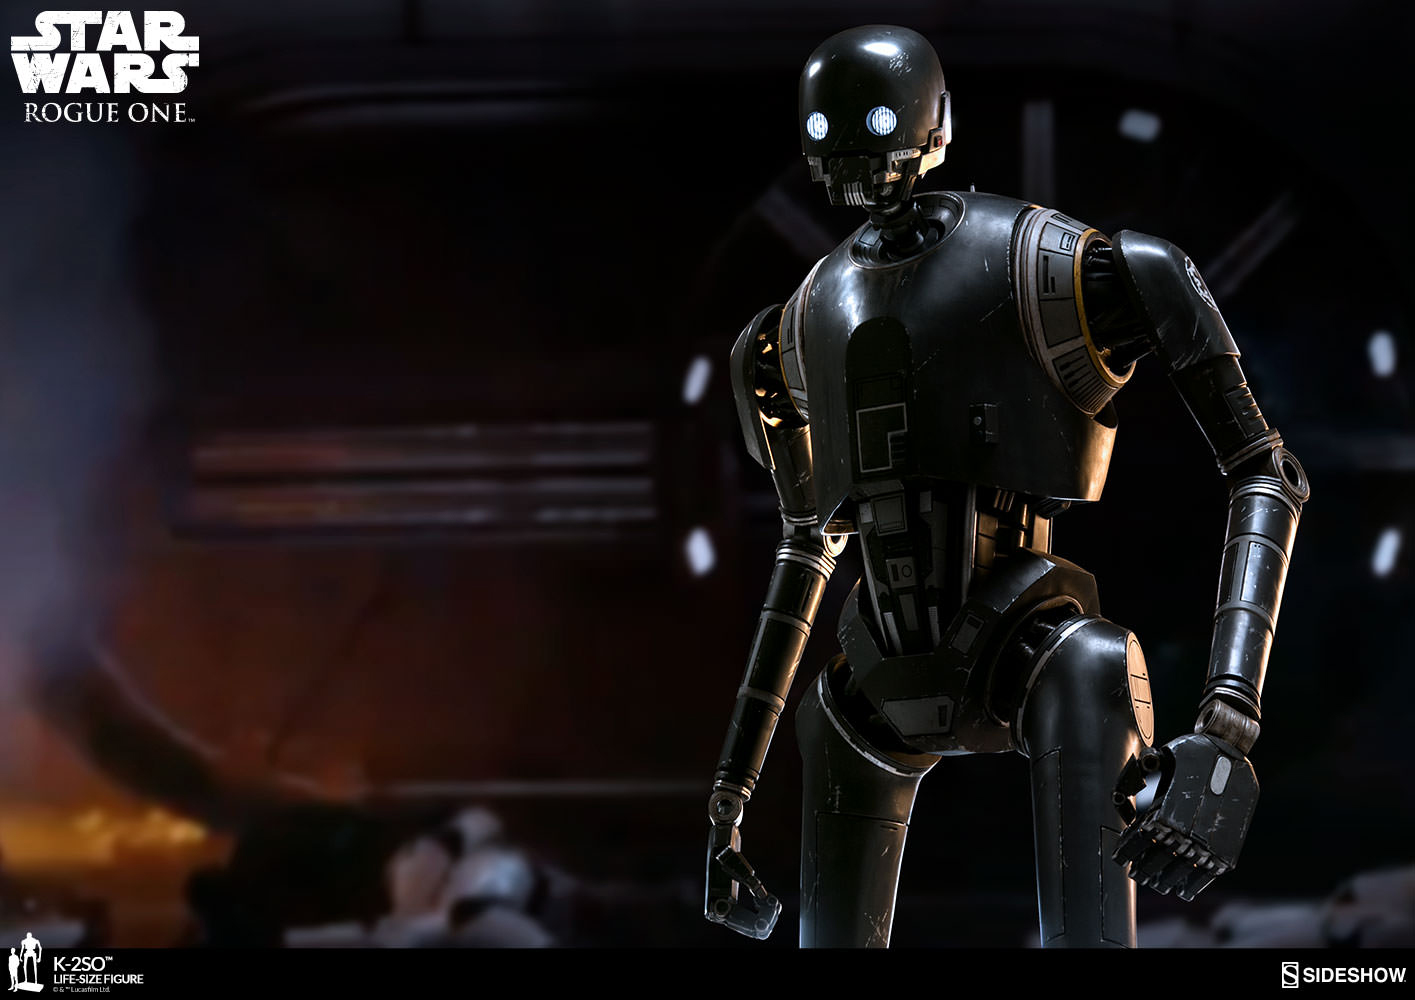 star-wars-rogue-one-k-2s0-life-size-figure-sideshow-collectibles